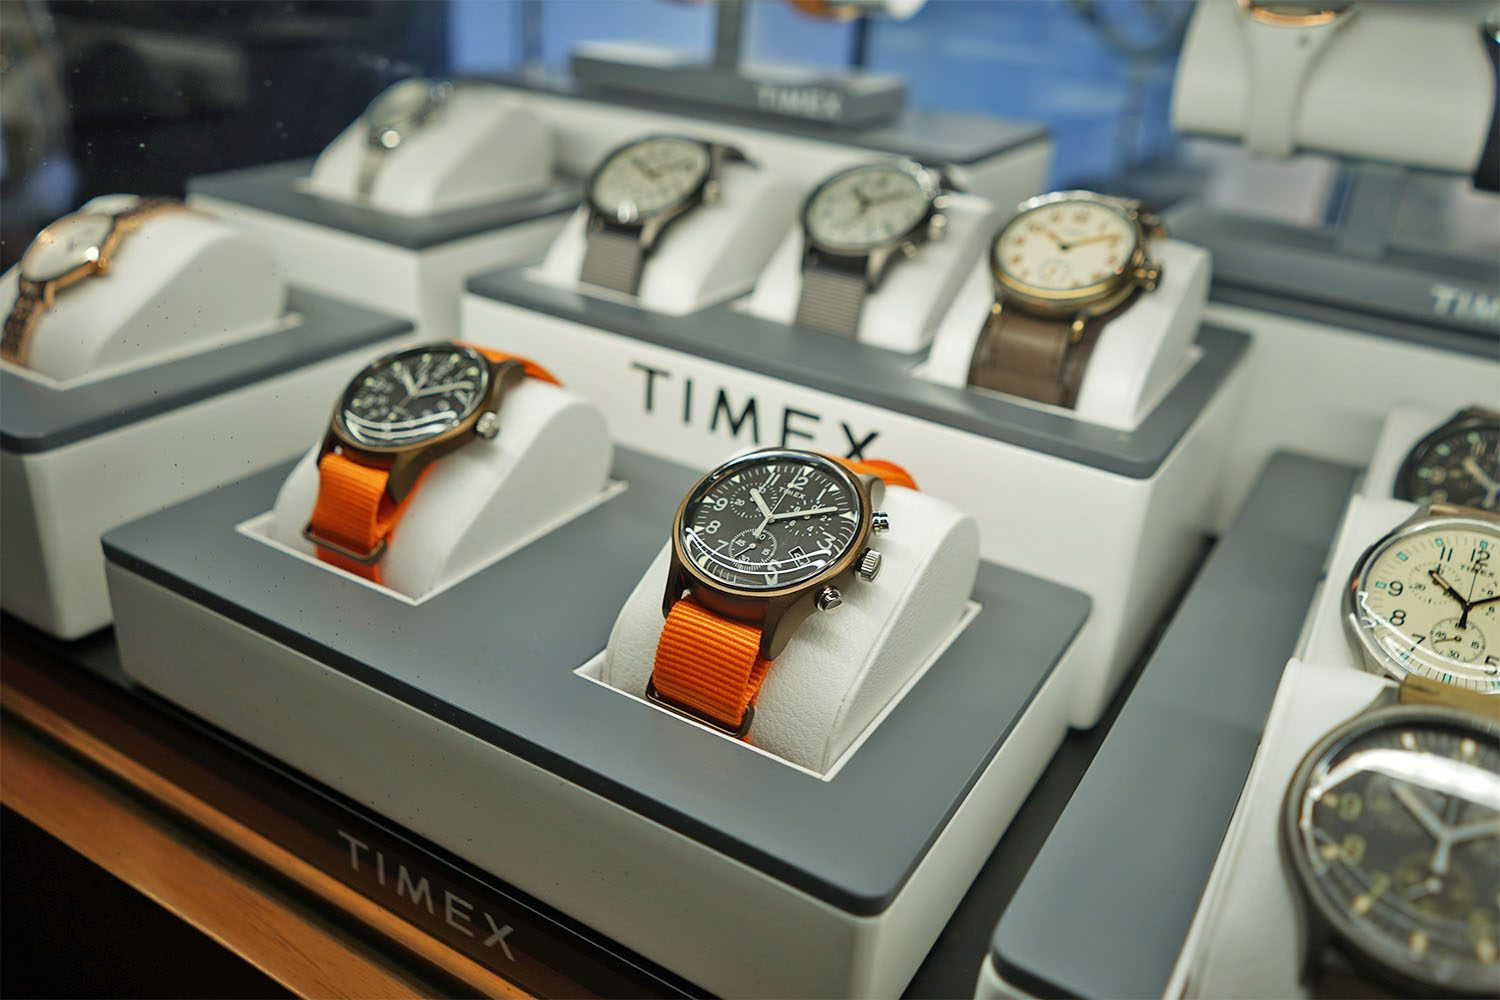 TIMEX INDONESIA GREATEST OF ALL TIME LAUNCHING EVENT 2